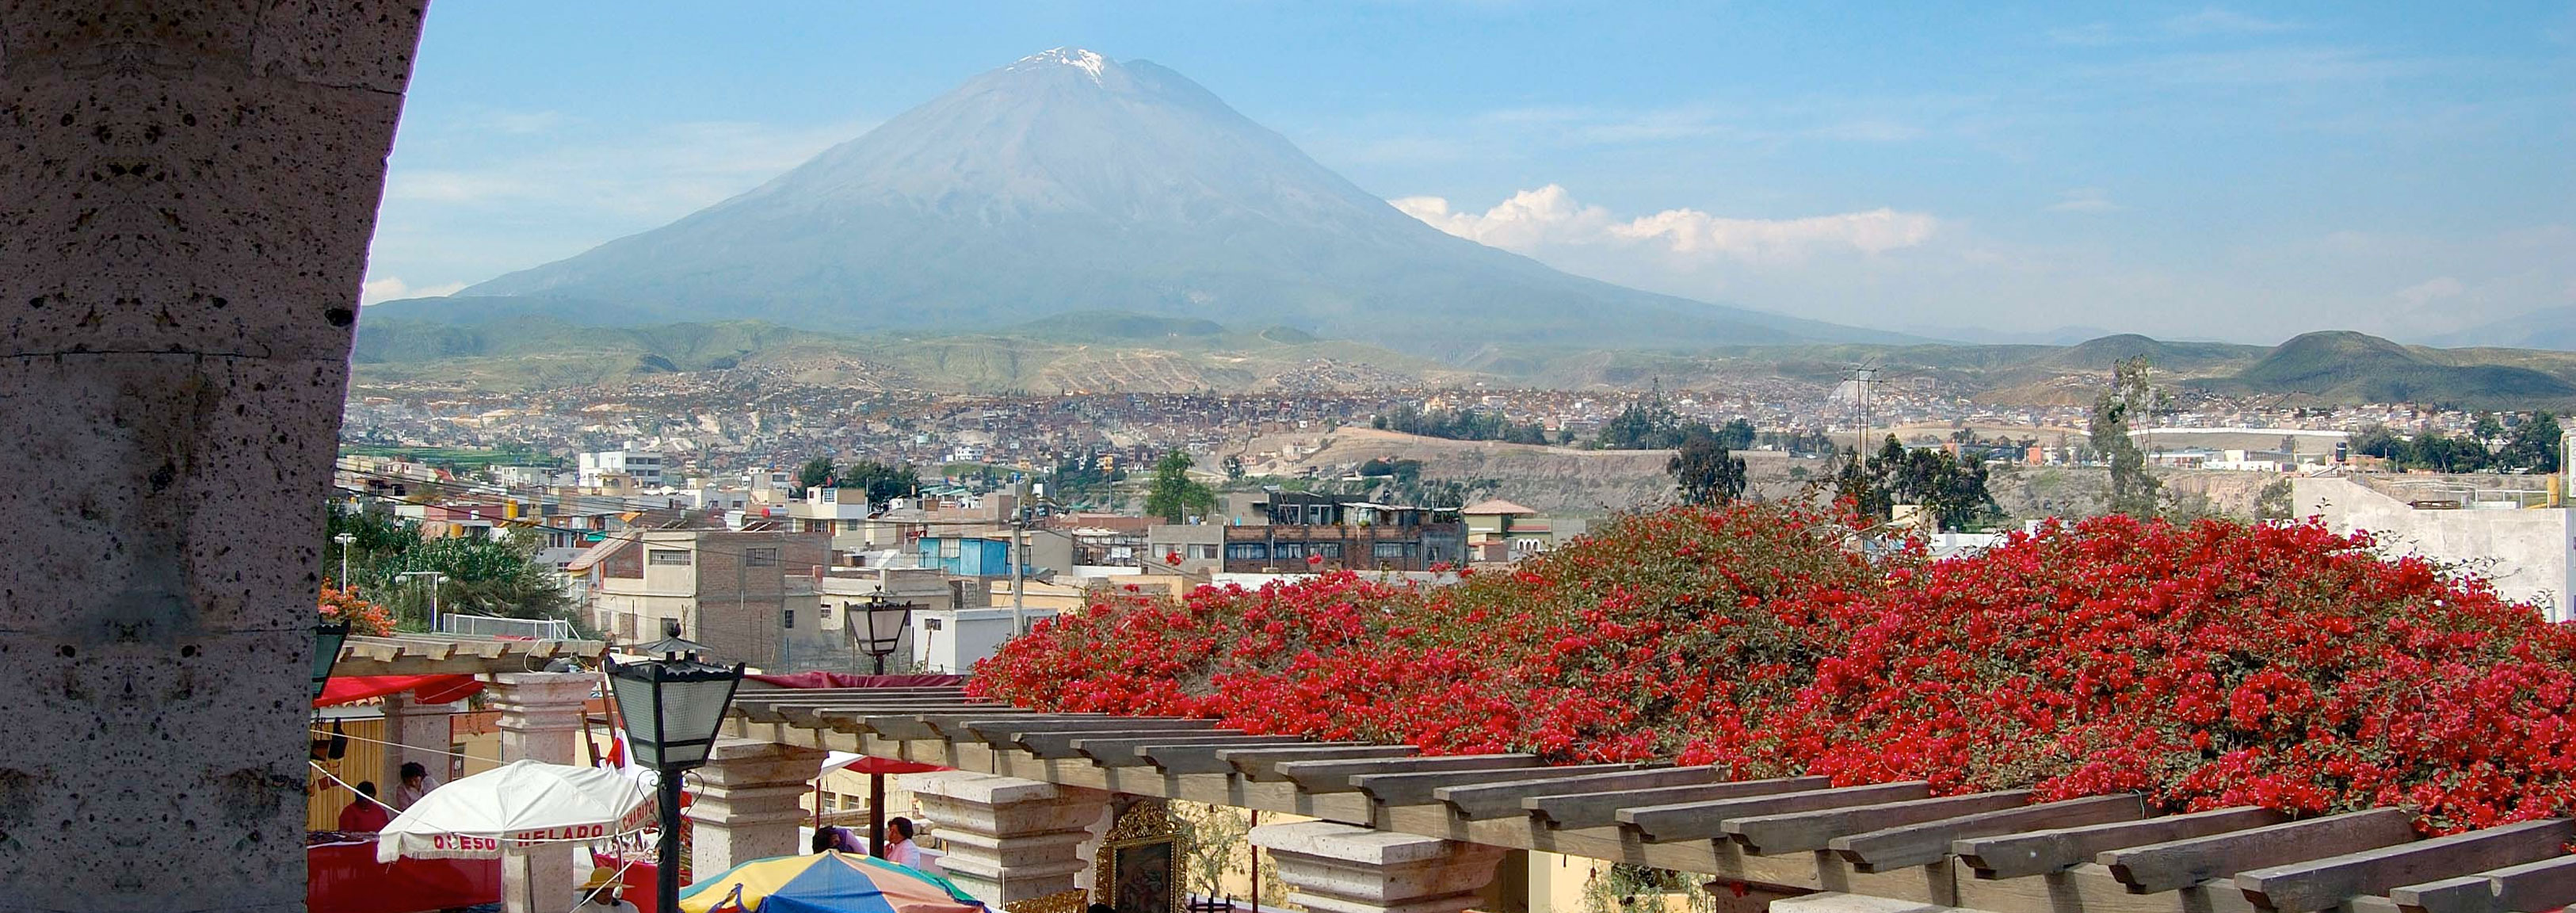 Arequipa Colonial